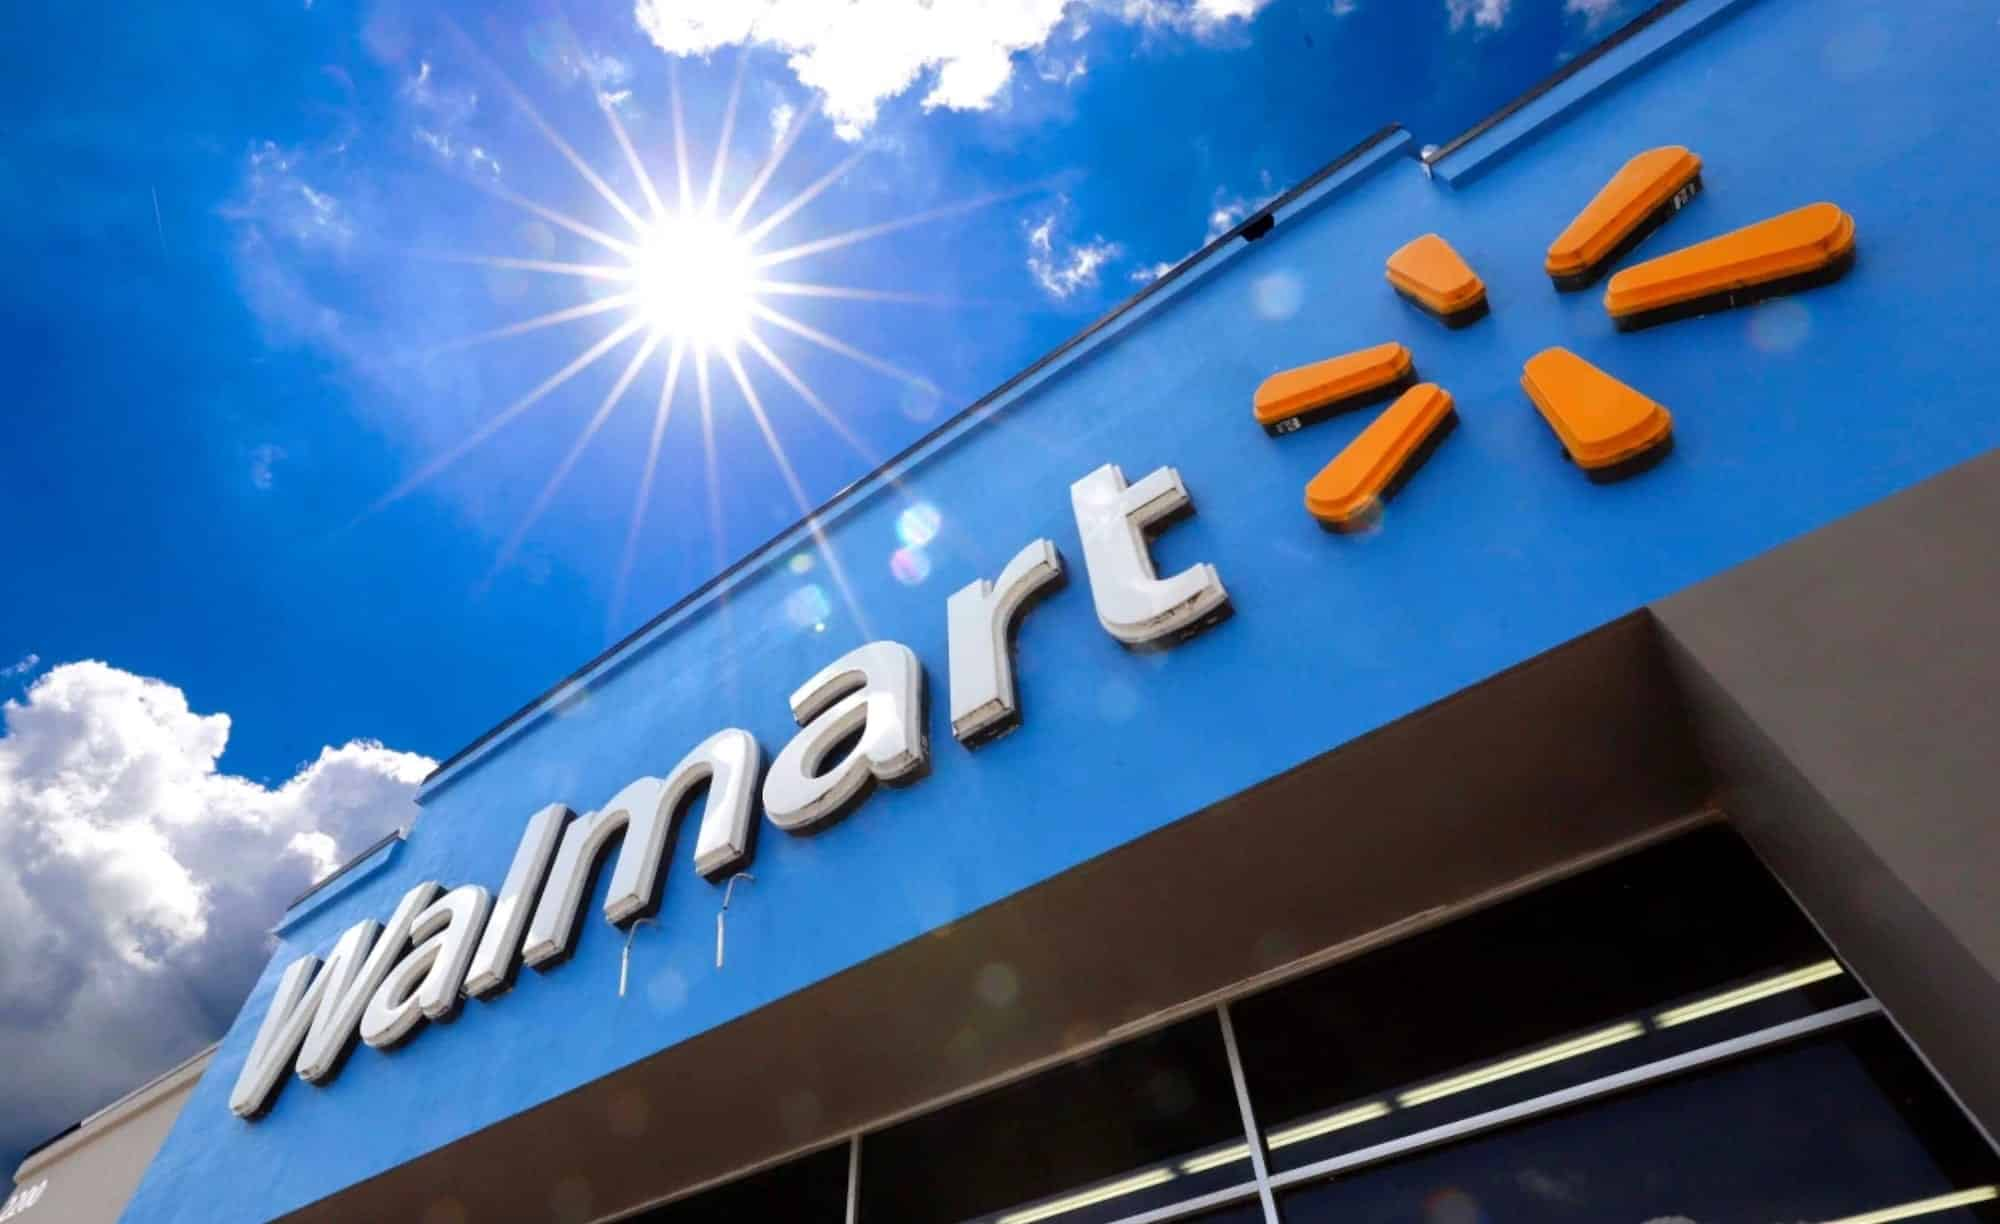 Walmart to deliver COVID-19 test kits by drone in pilot project